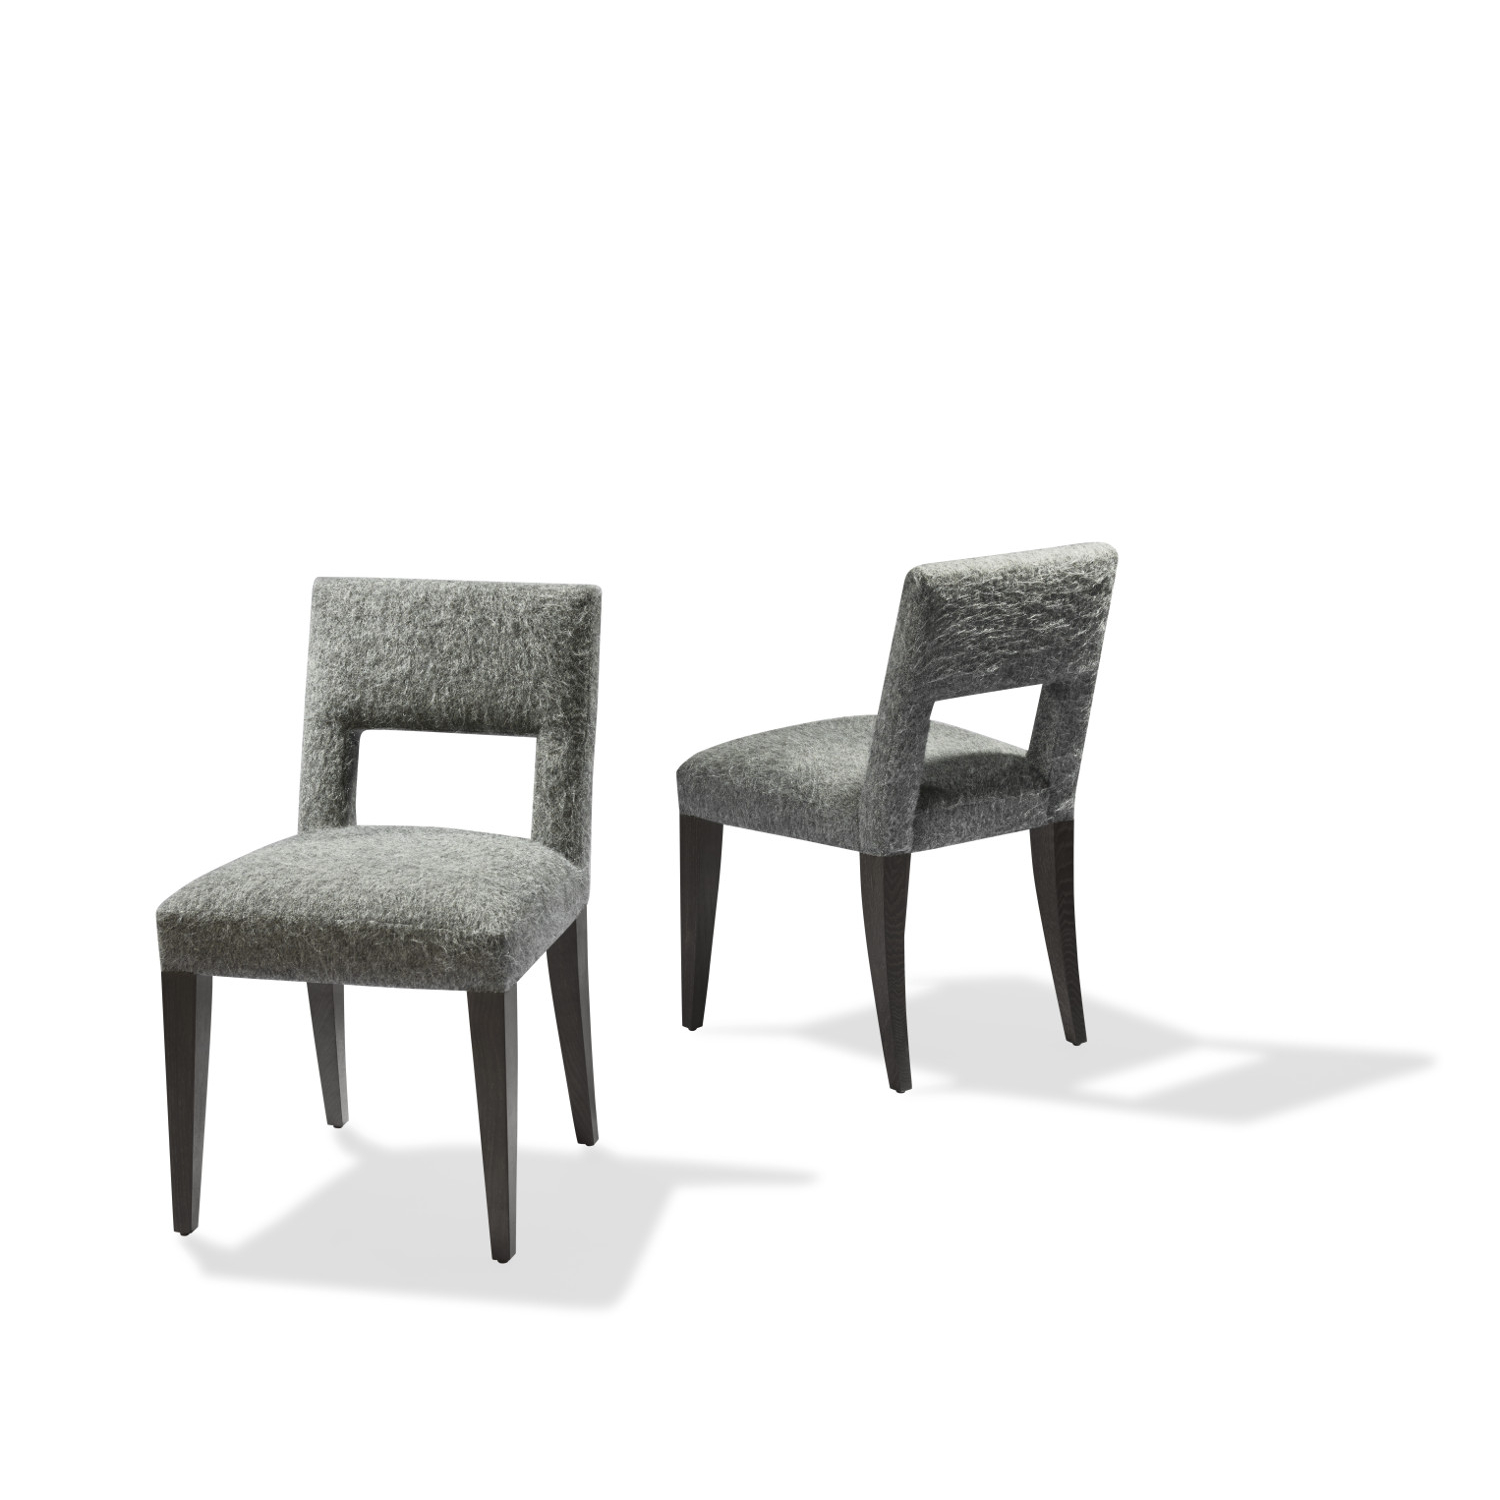 MAÏKO - Chairs